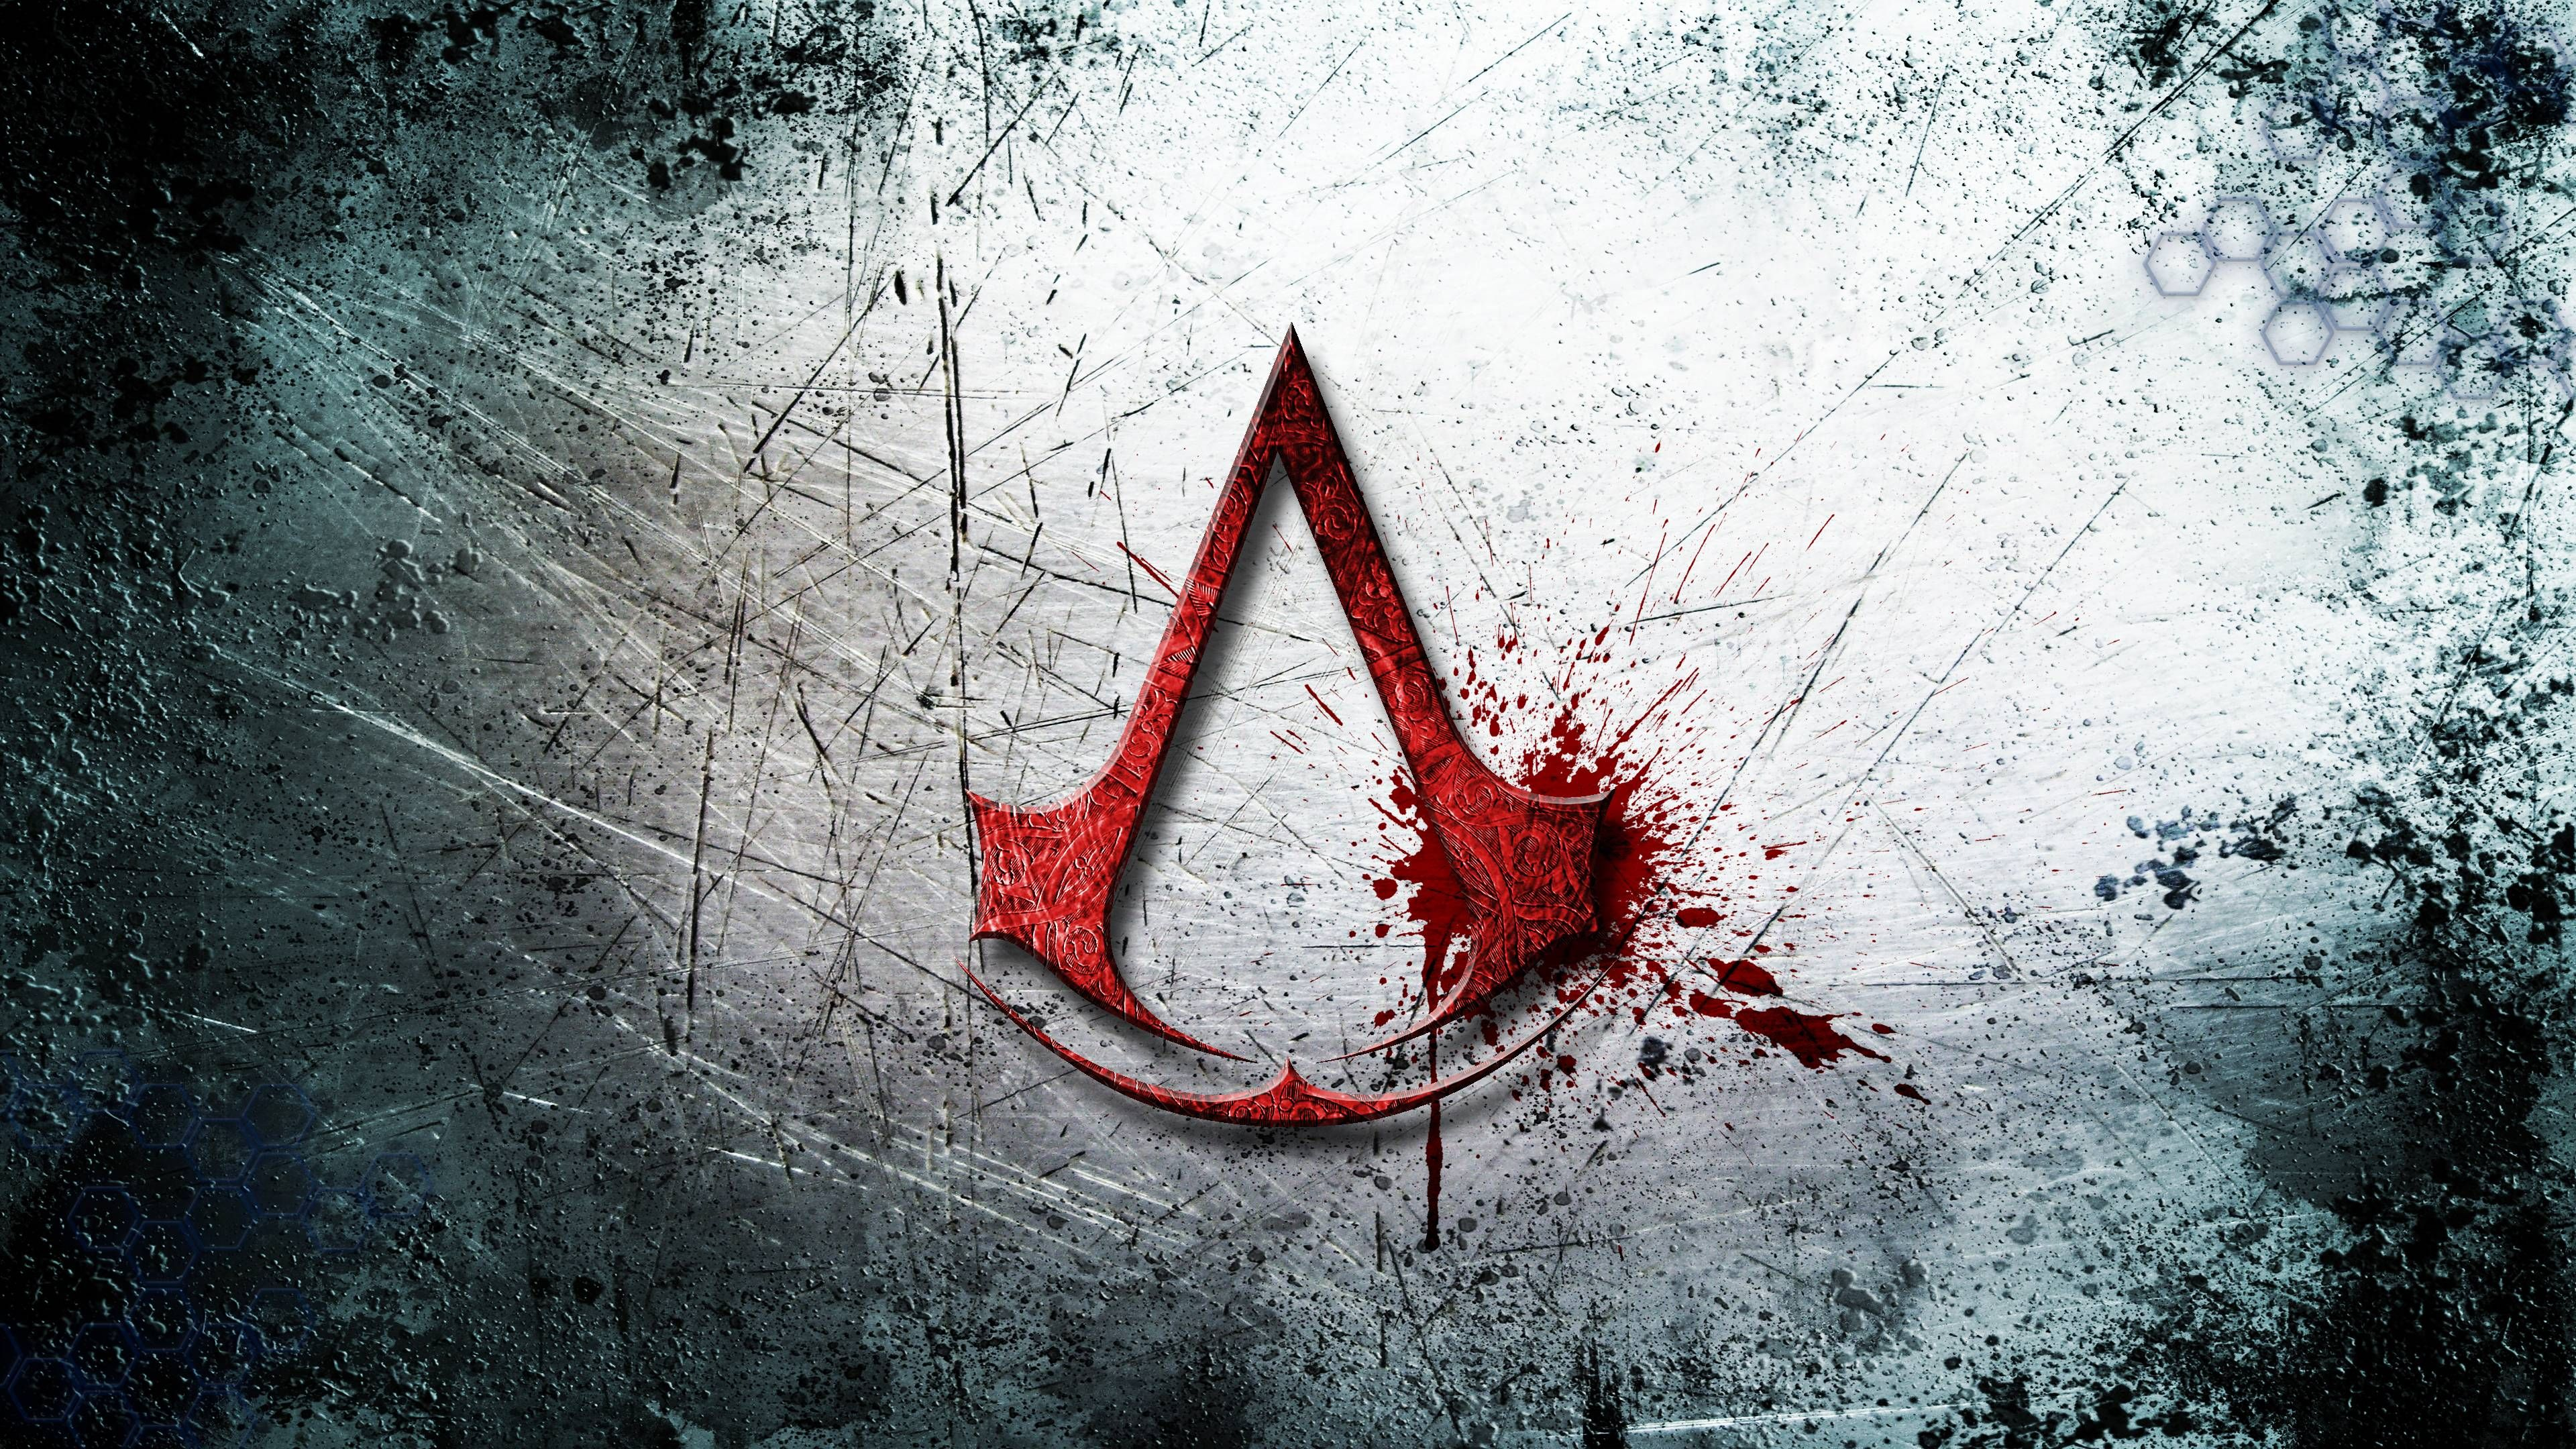 assassins creed wallpaper | 3840x2160 | id:39572 | assassin's creed